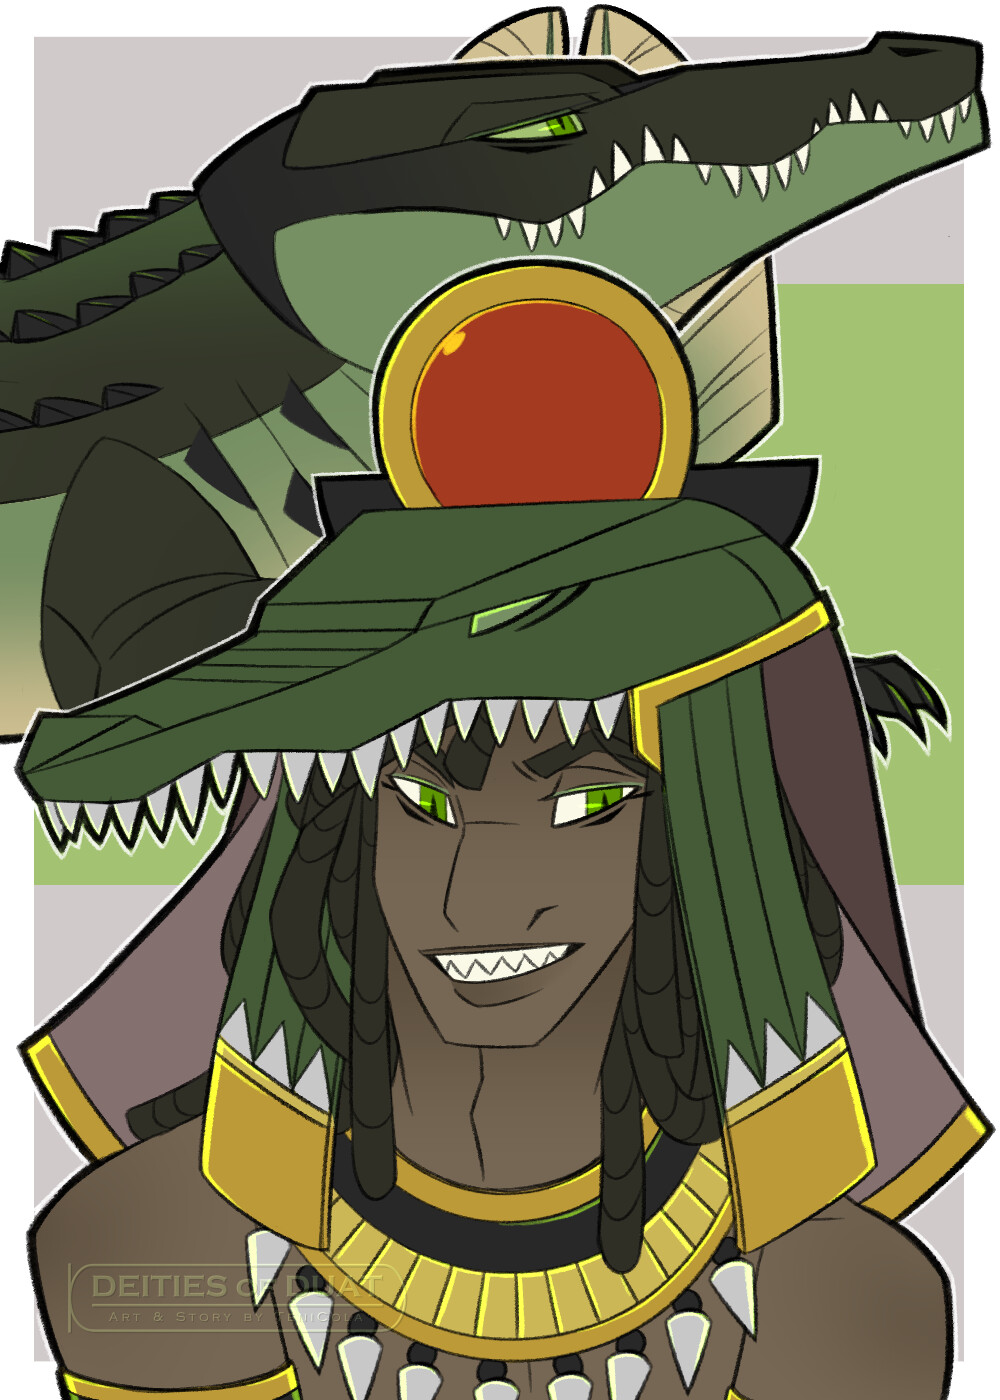 SOBEK -- The God of the Nile, warfare, and the military. His sacred animal is the Crocodile.